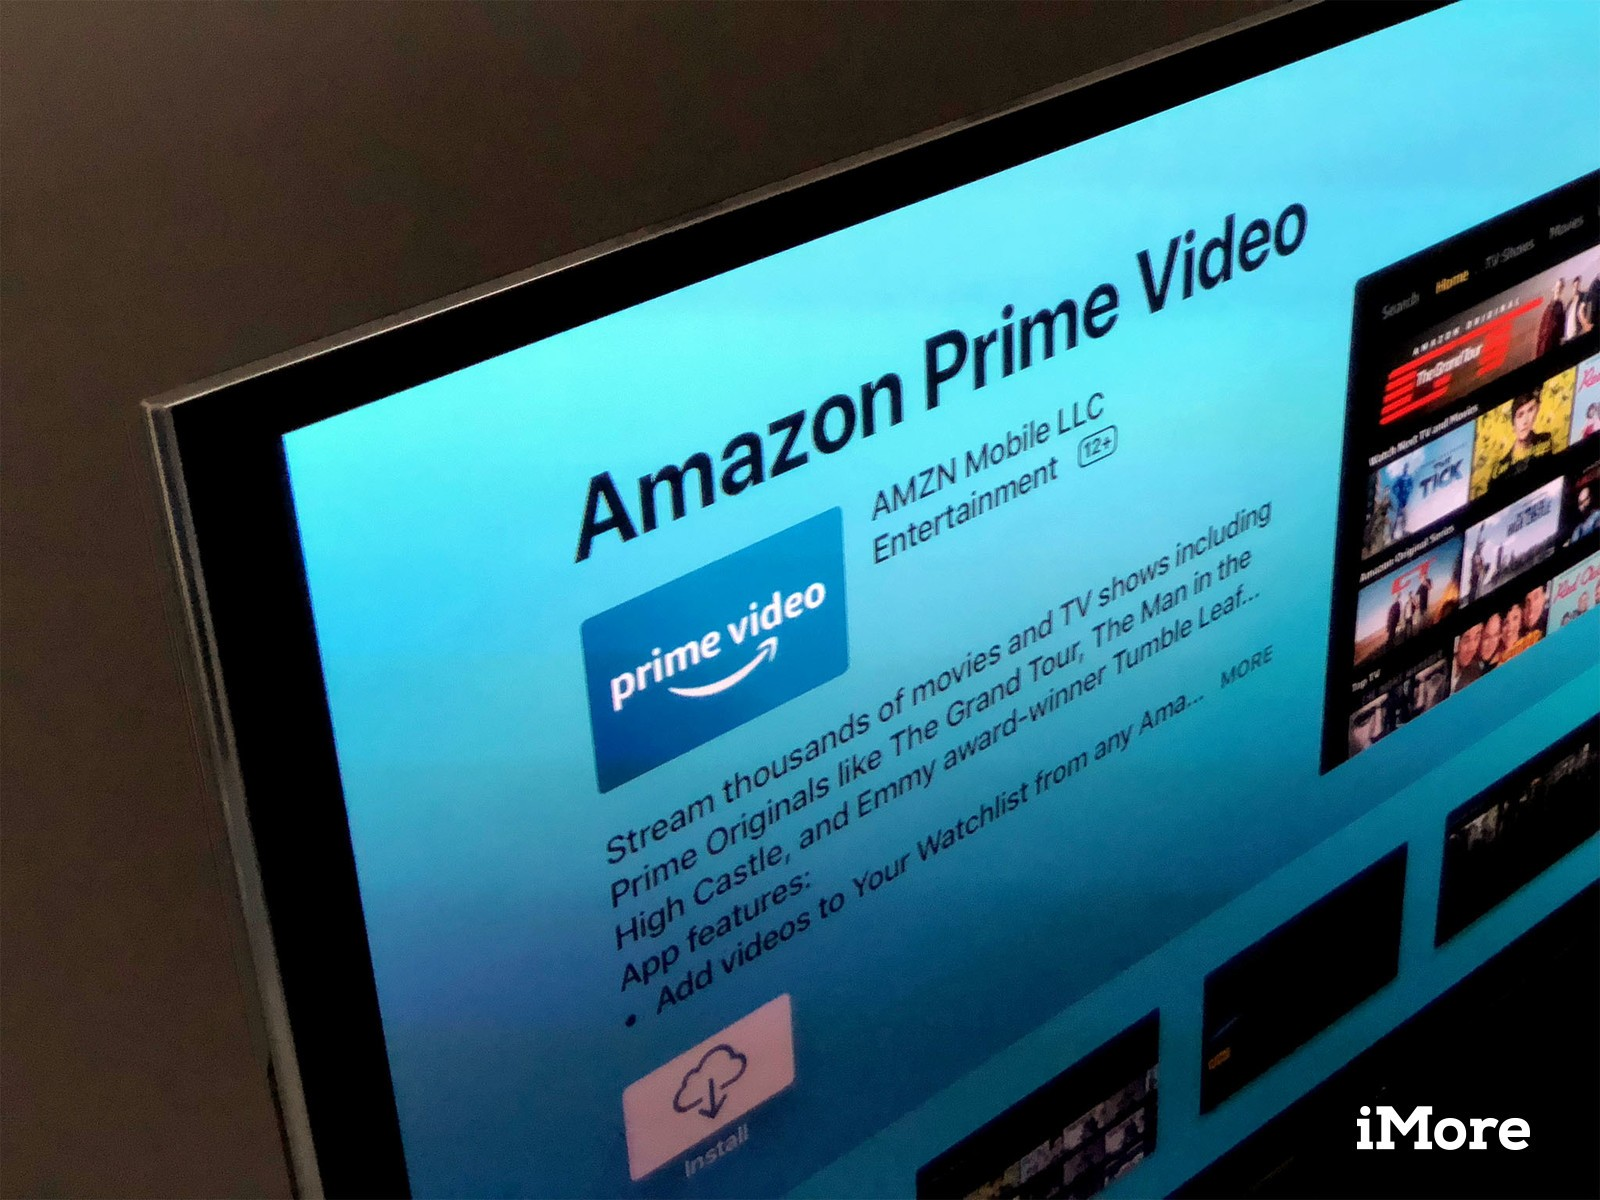 Amazon Prime Video réapparaît enfin sur le Chromecast de Google